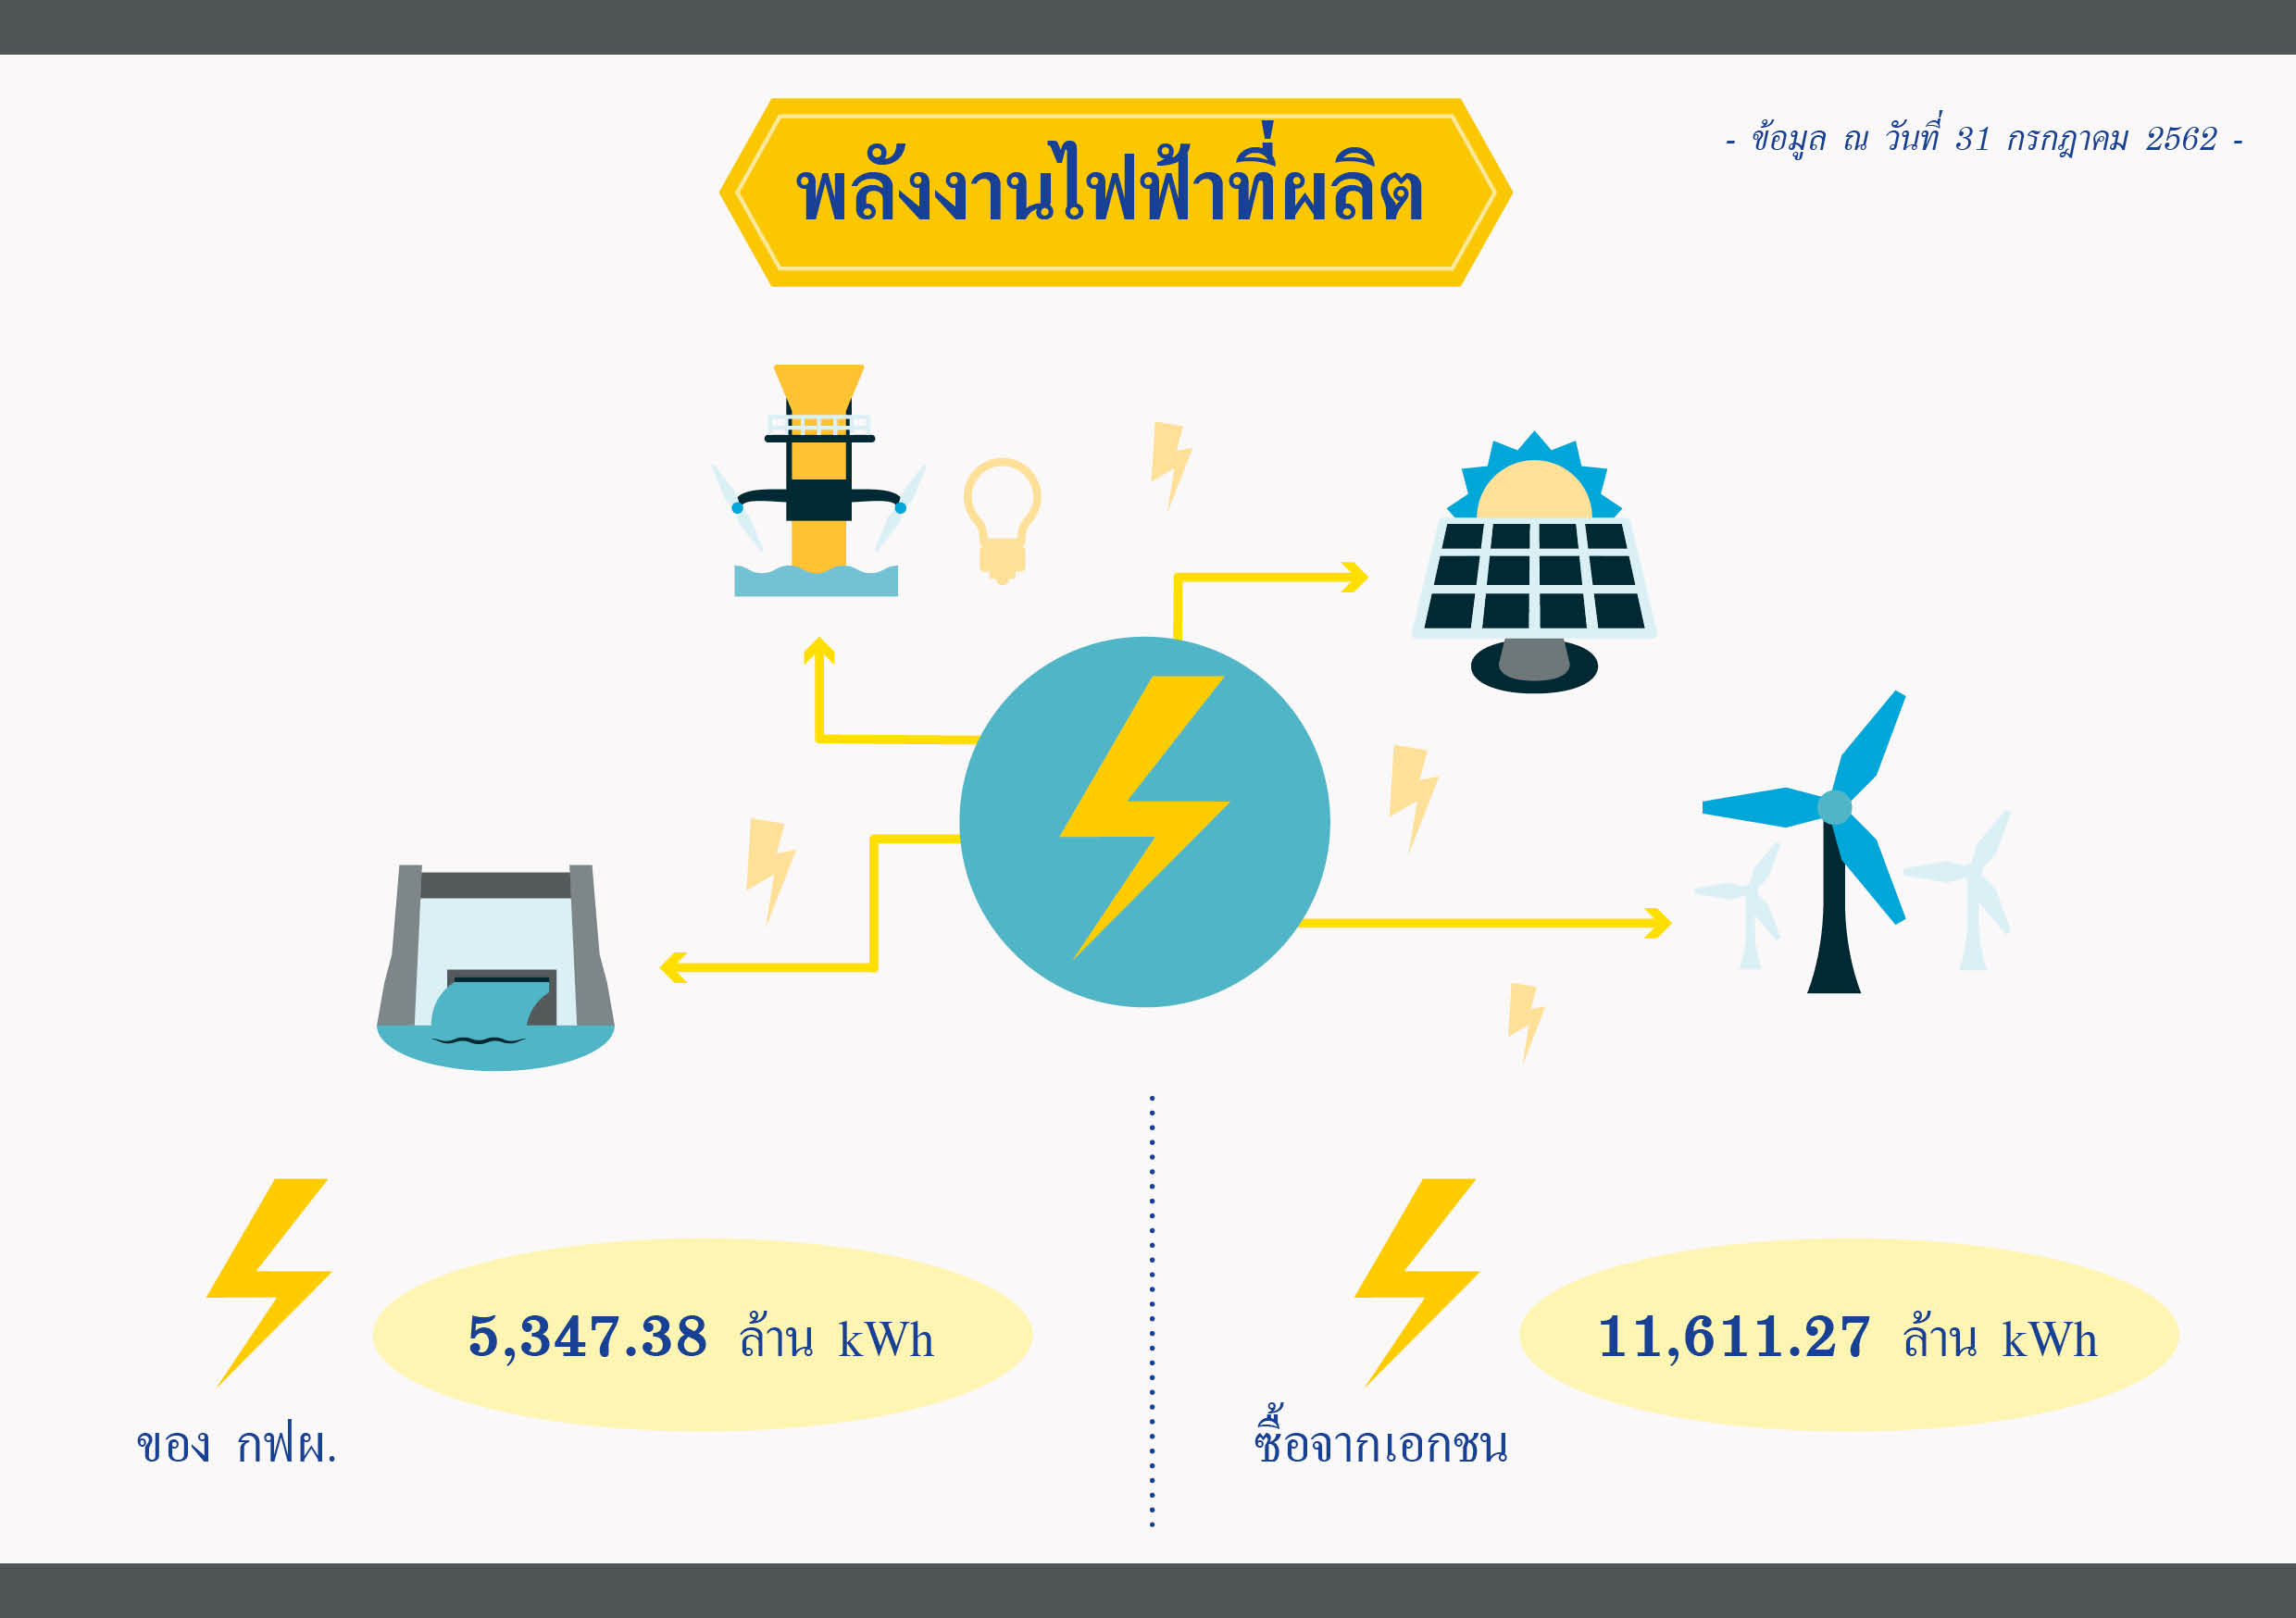 gross-energy-generation-and-purchase_2019-07